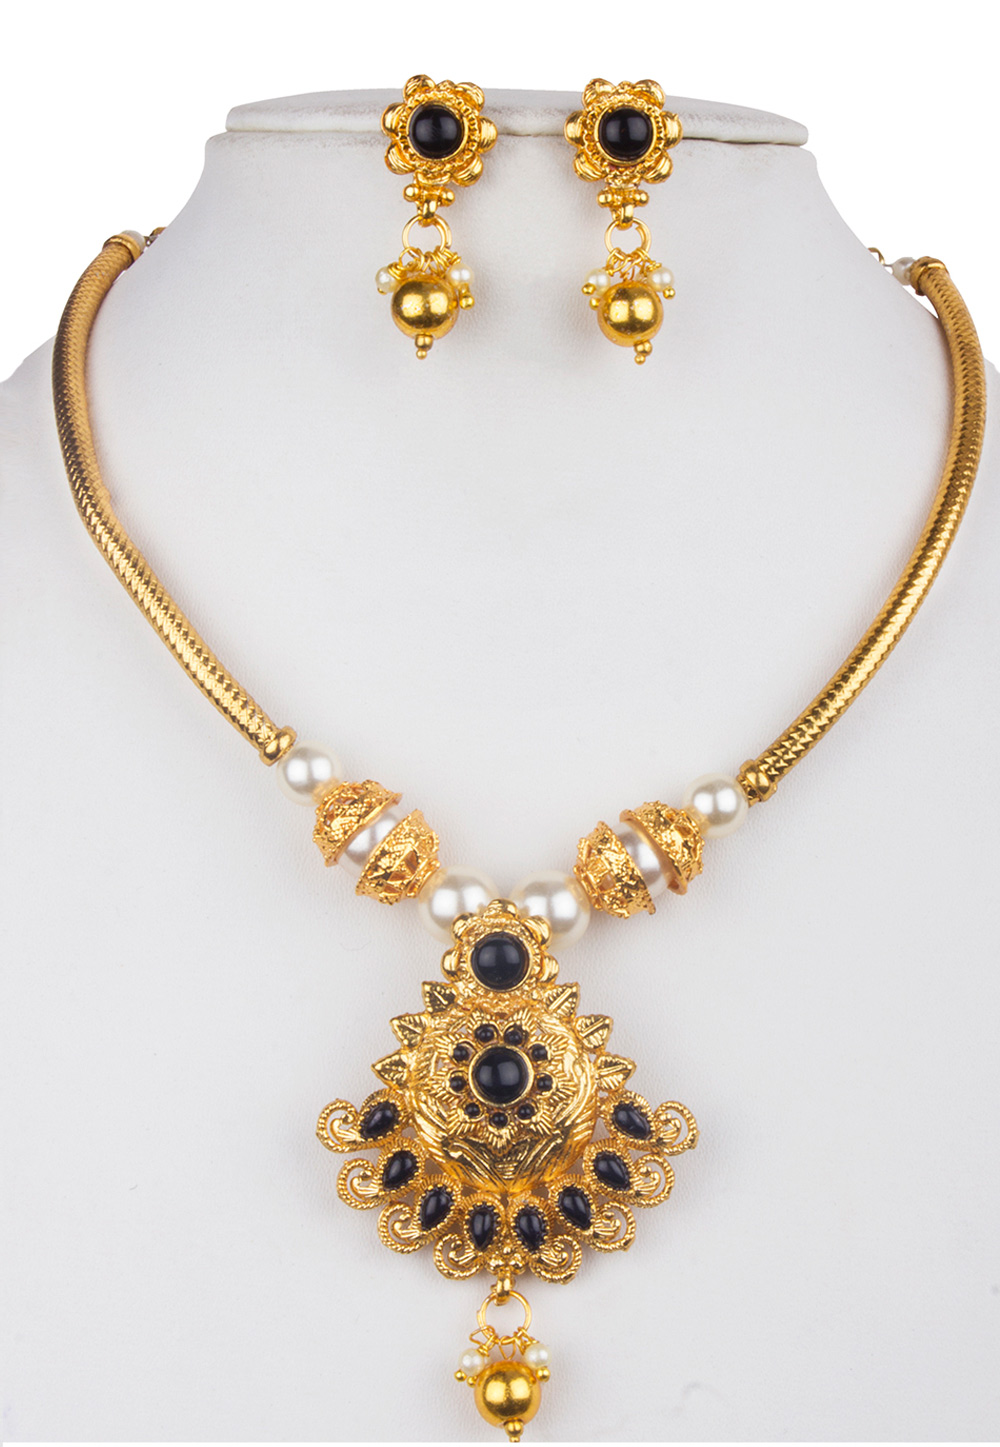 Golden Alloy Kundan Necklace With Earrings 156264